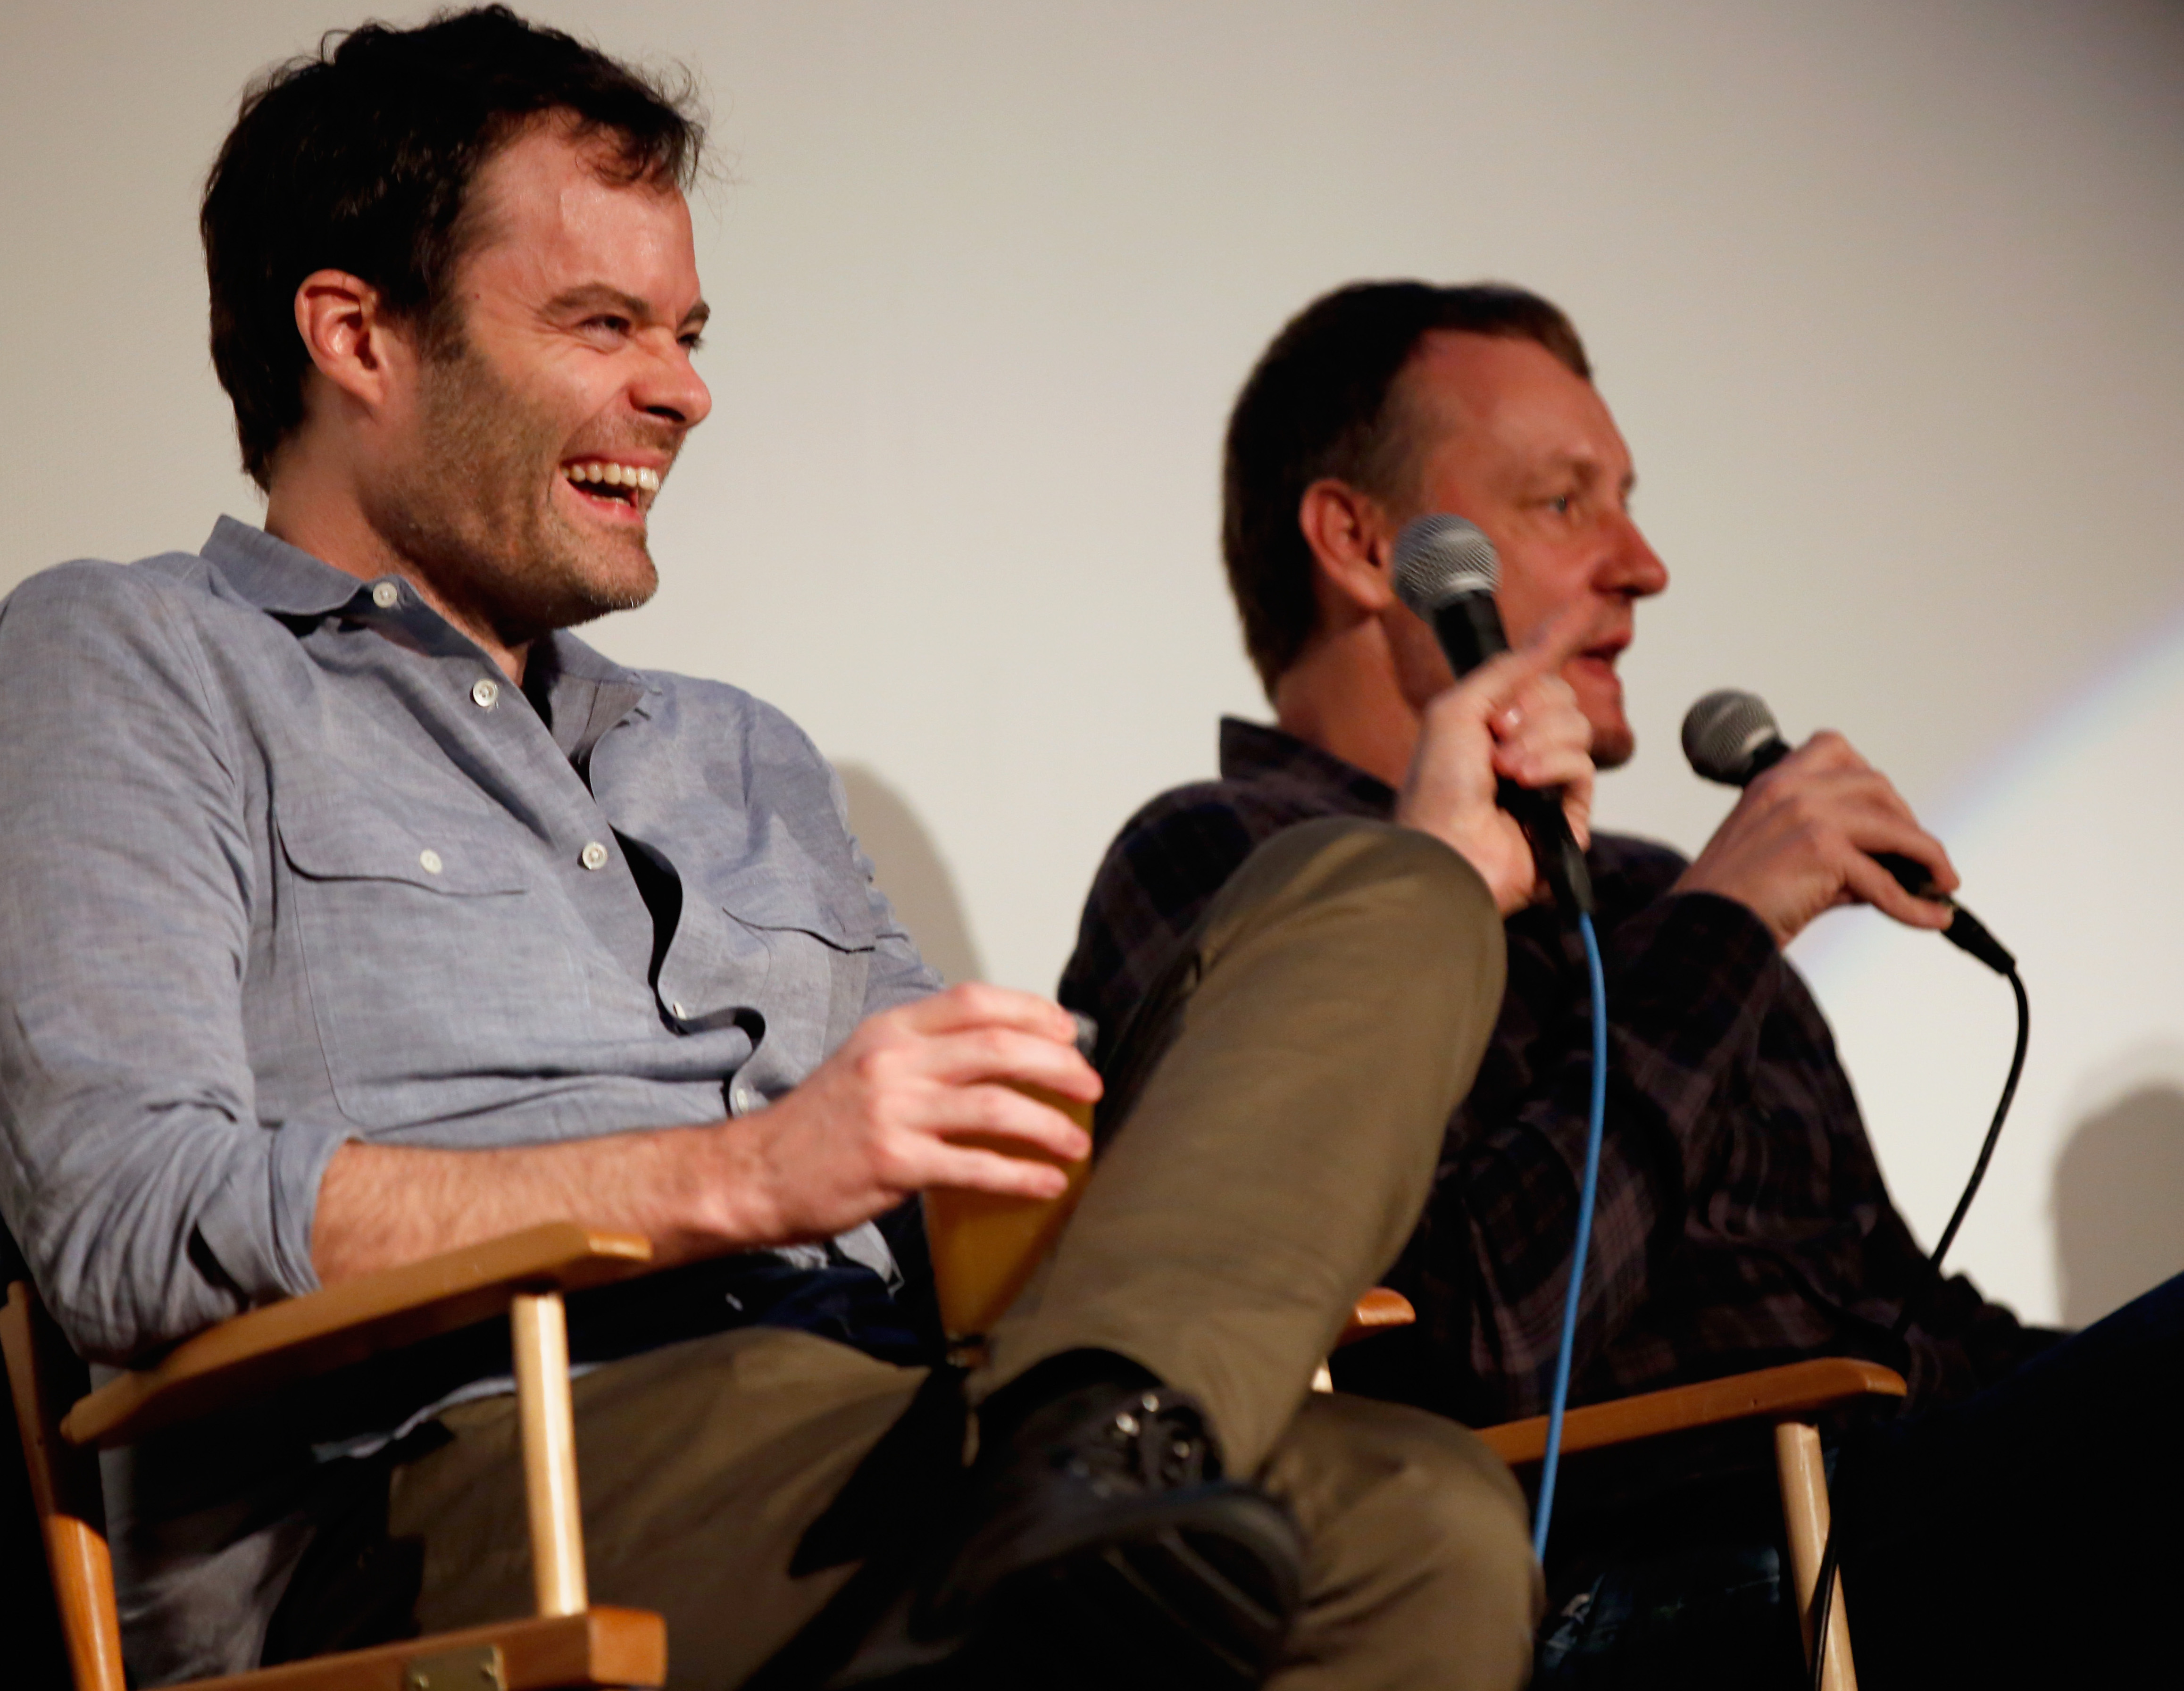 Bill Hader and Alec Berg at the world premiere of Barry | Photo by Sean Mathis/Getty Images